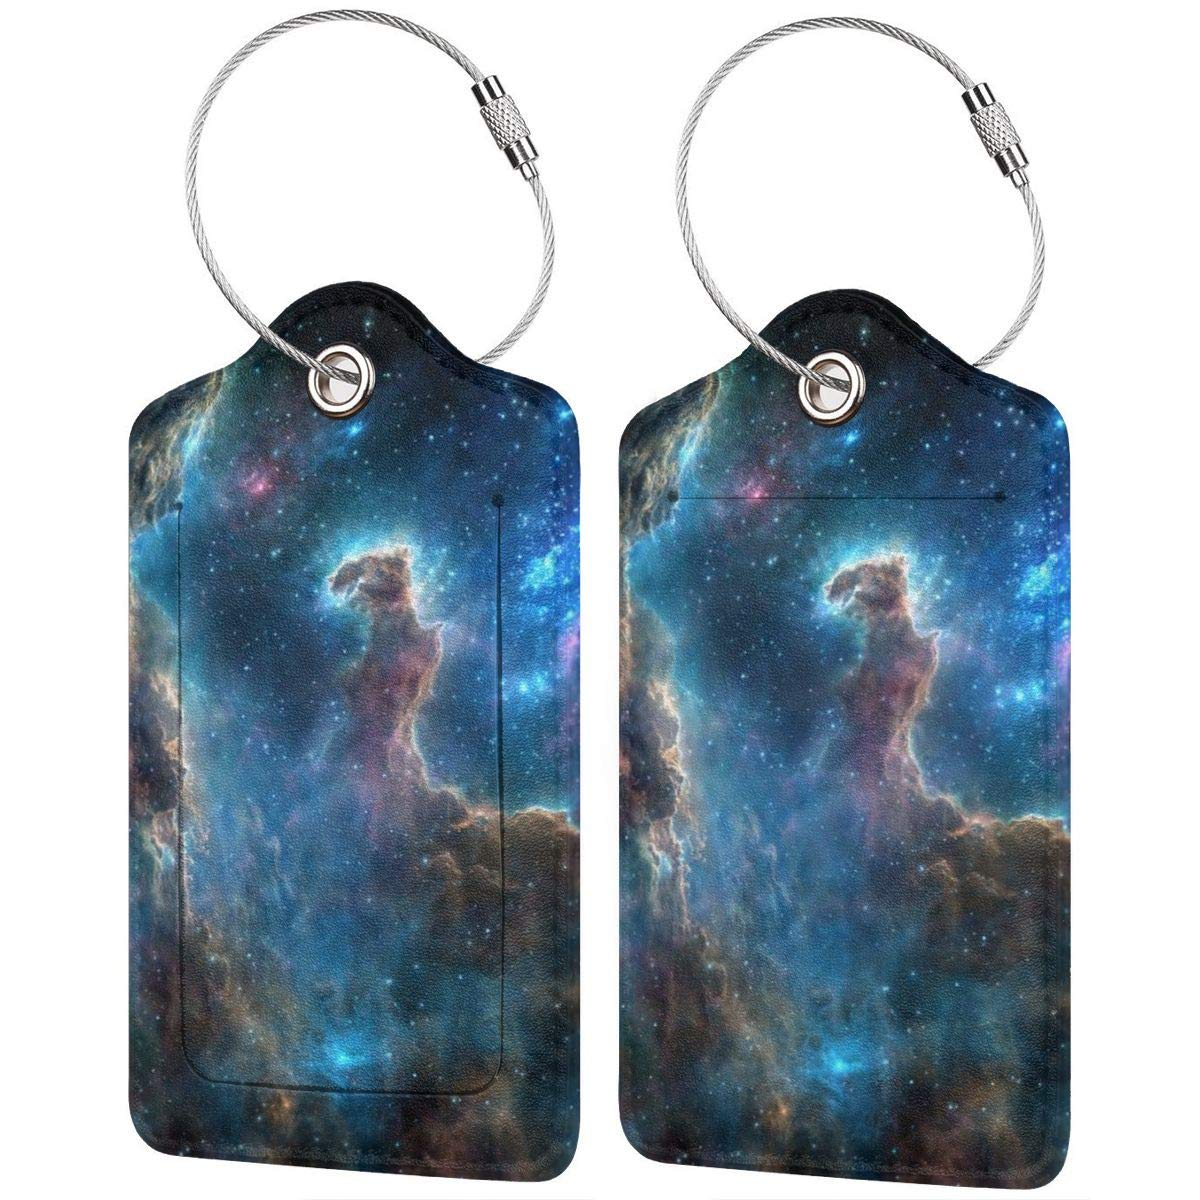 Space Nebula Spitzer Space Telescope Spaceship Travel Luggage Tags With Full Privacy Cover Leather Case And Stainless Steel Loop